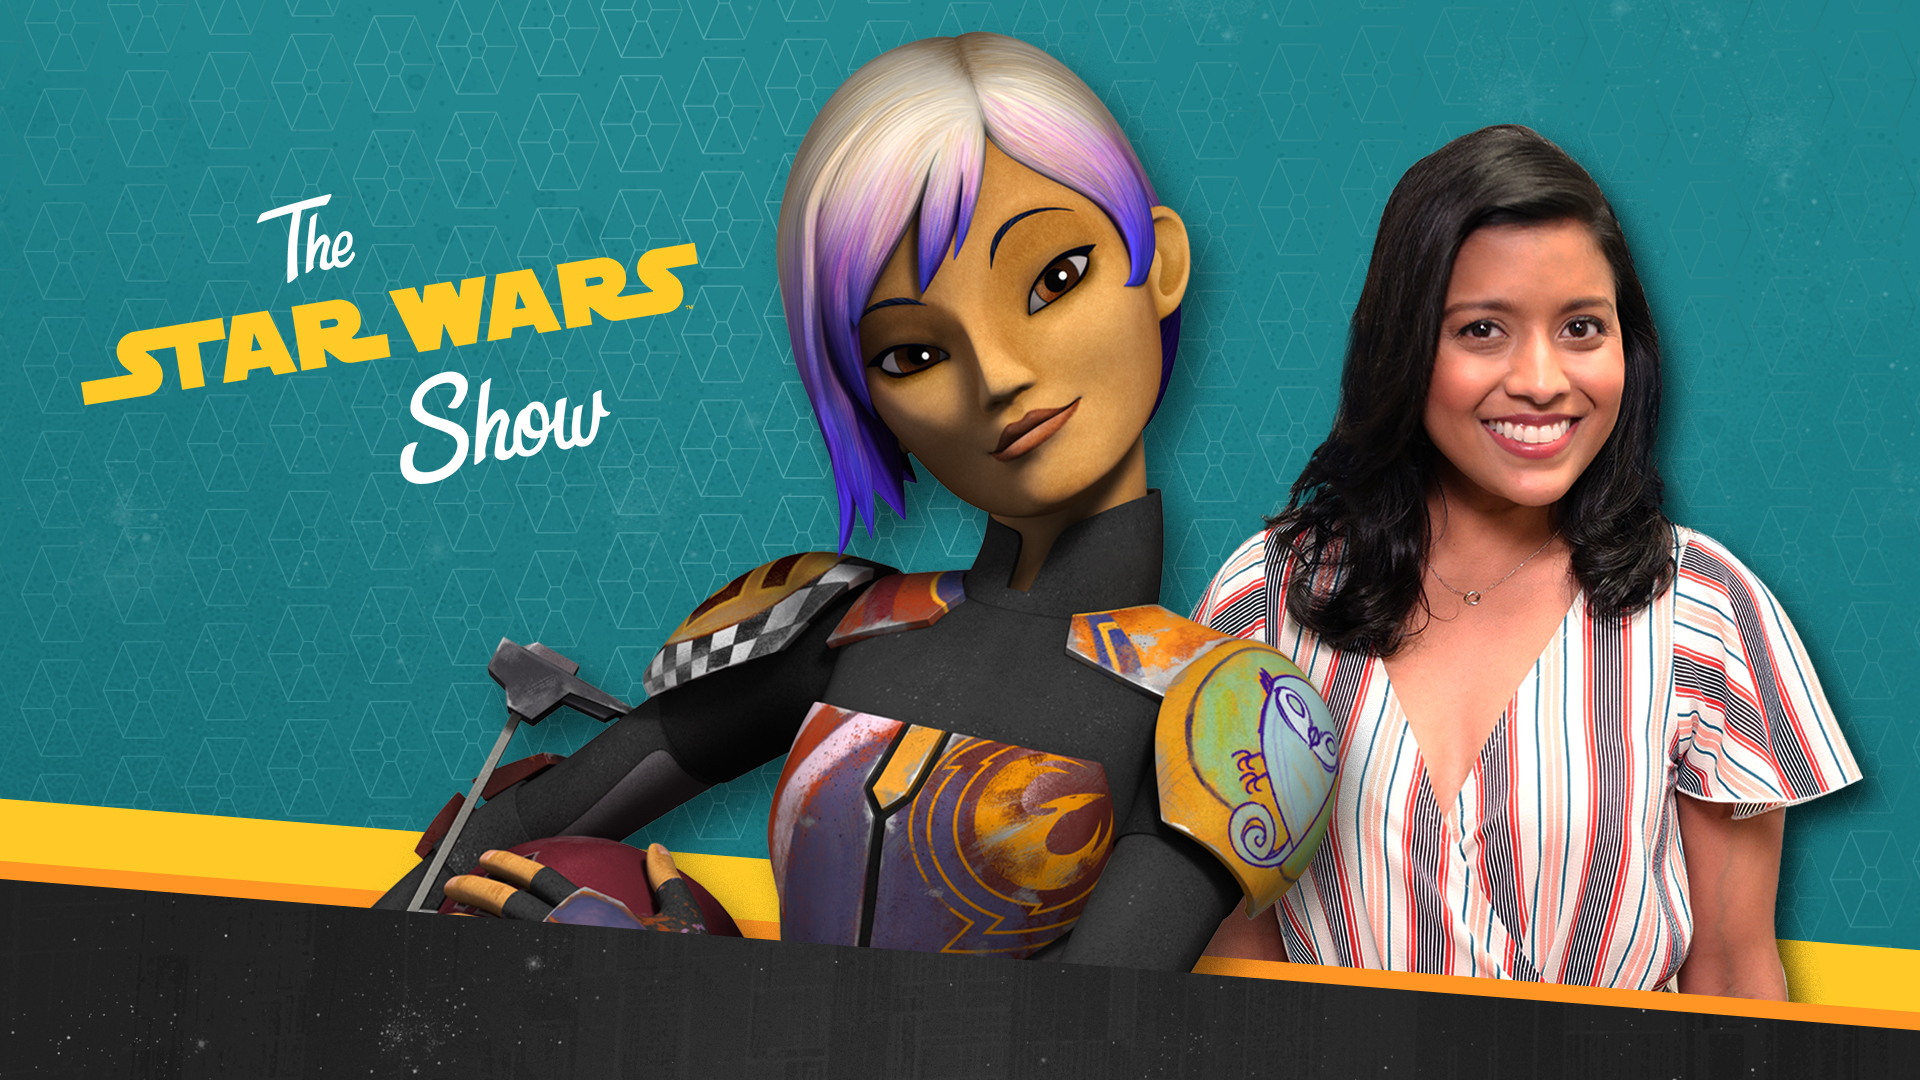 The Star Wars Show For February 21st